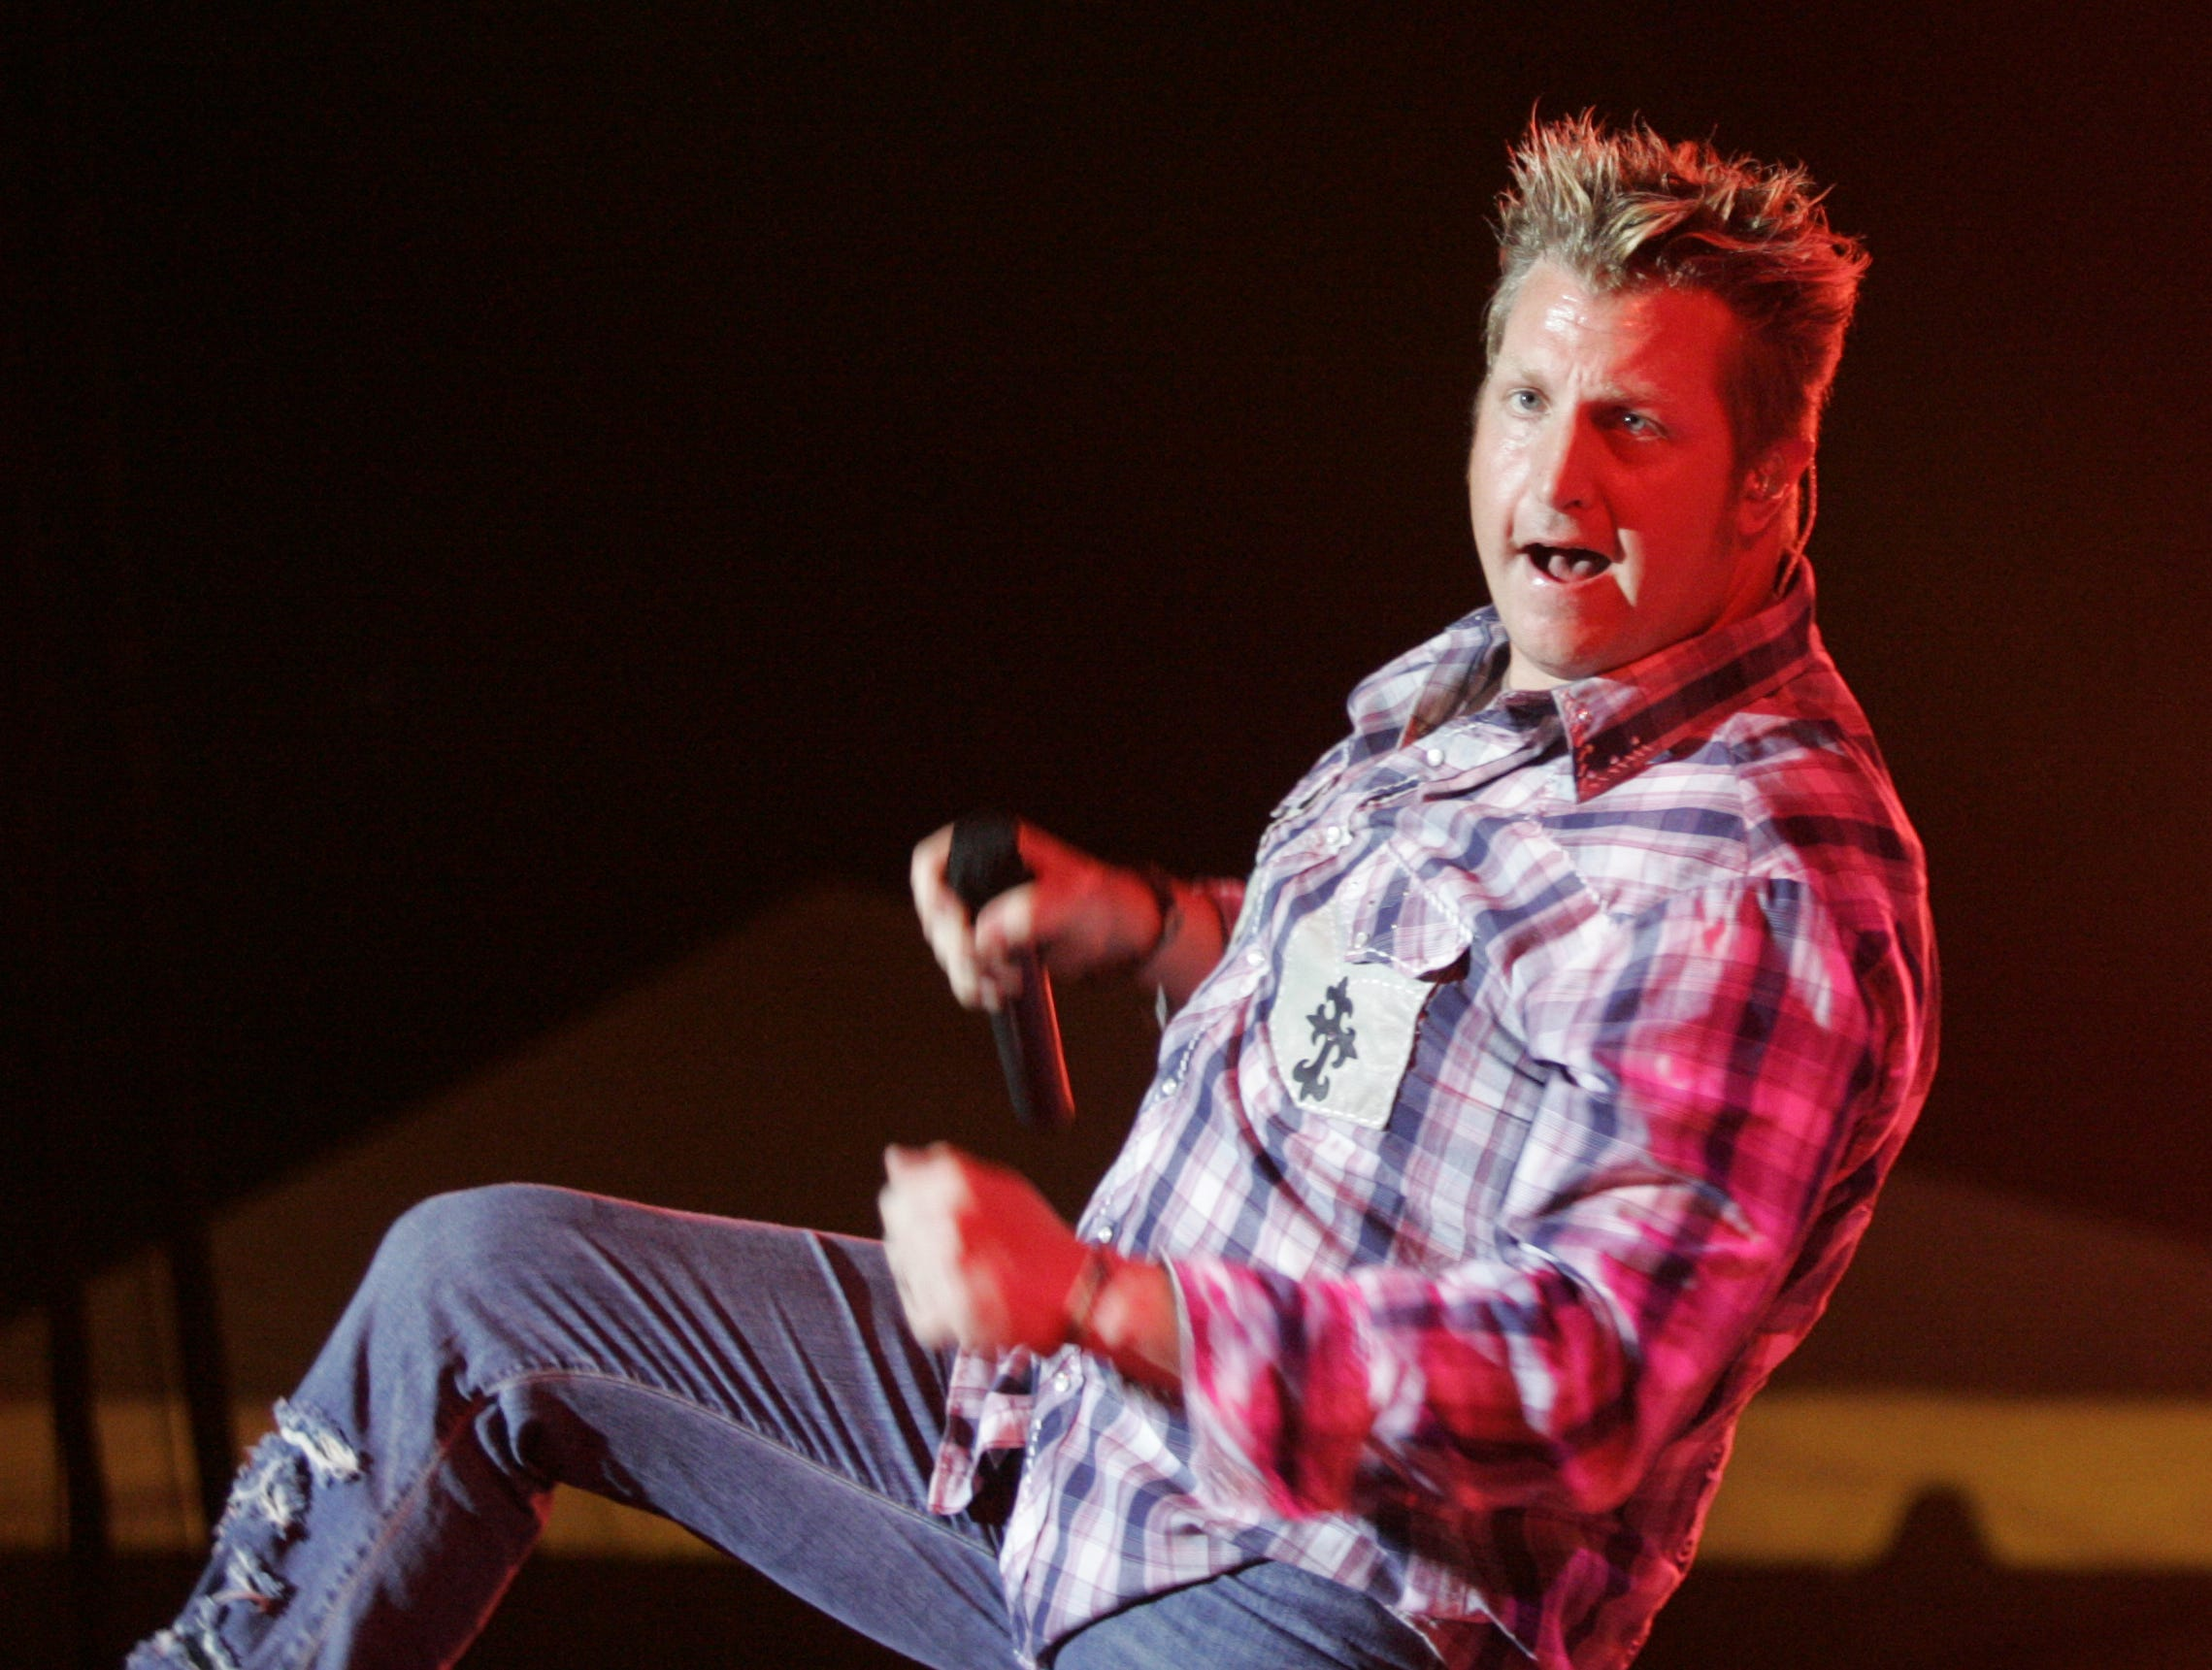 Lead singer Greg LeVox from the band Rascal Flatts played at the Indiana State Fair, Thursday, Aug. 11, 2005 after returning from Iraq where they played for the military.